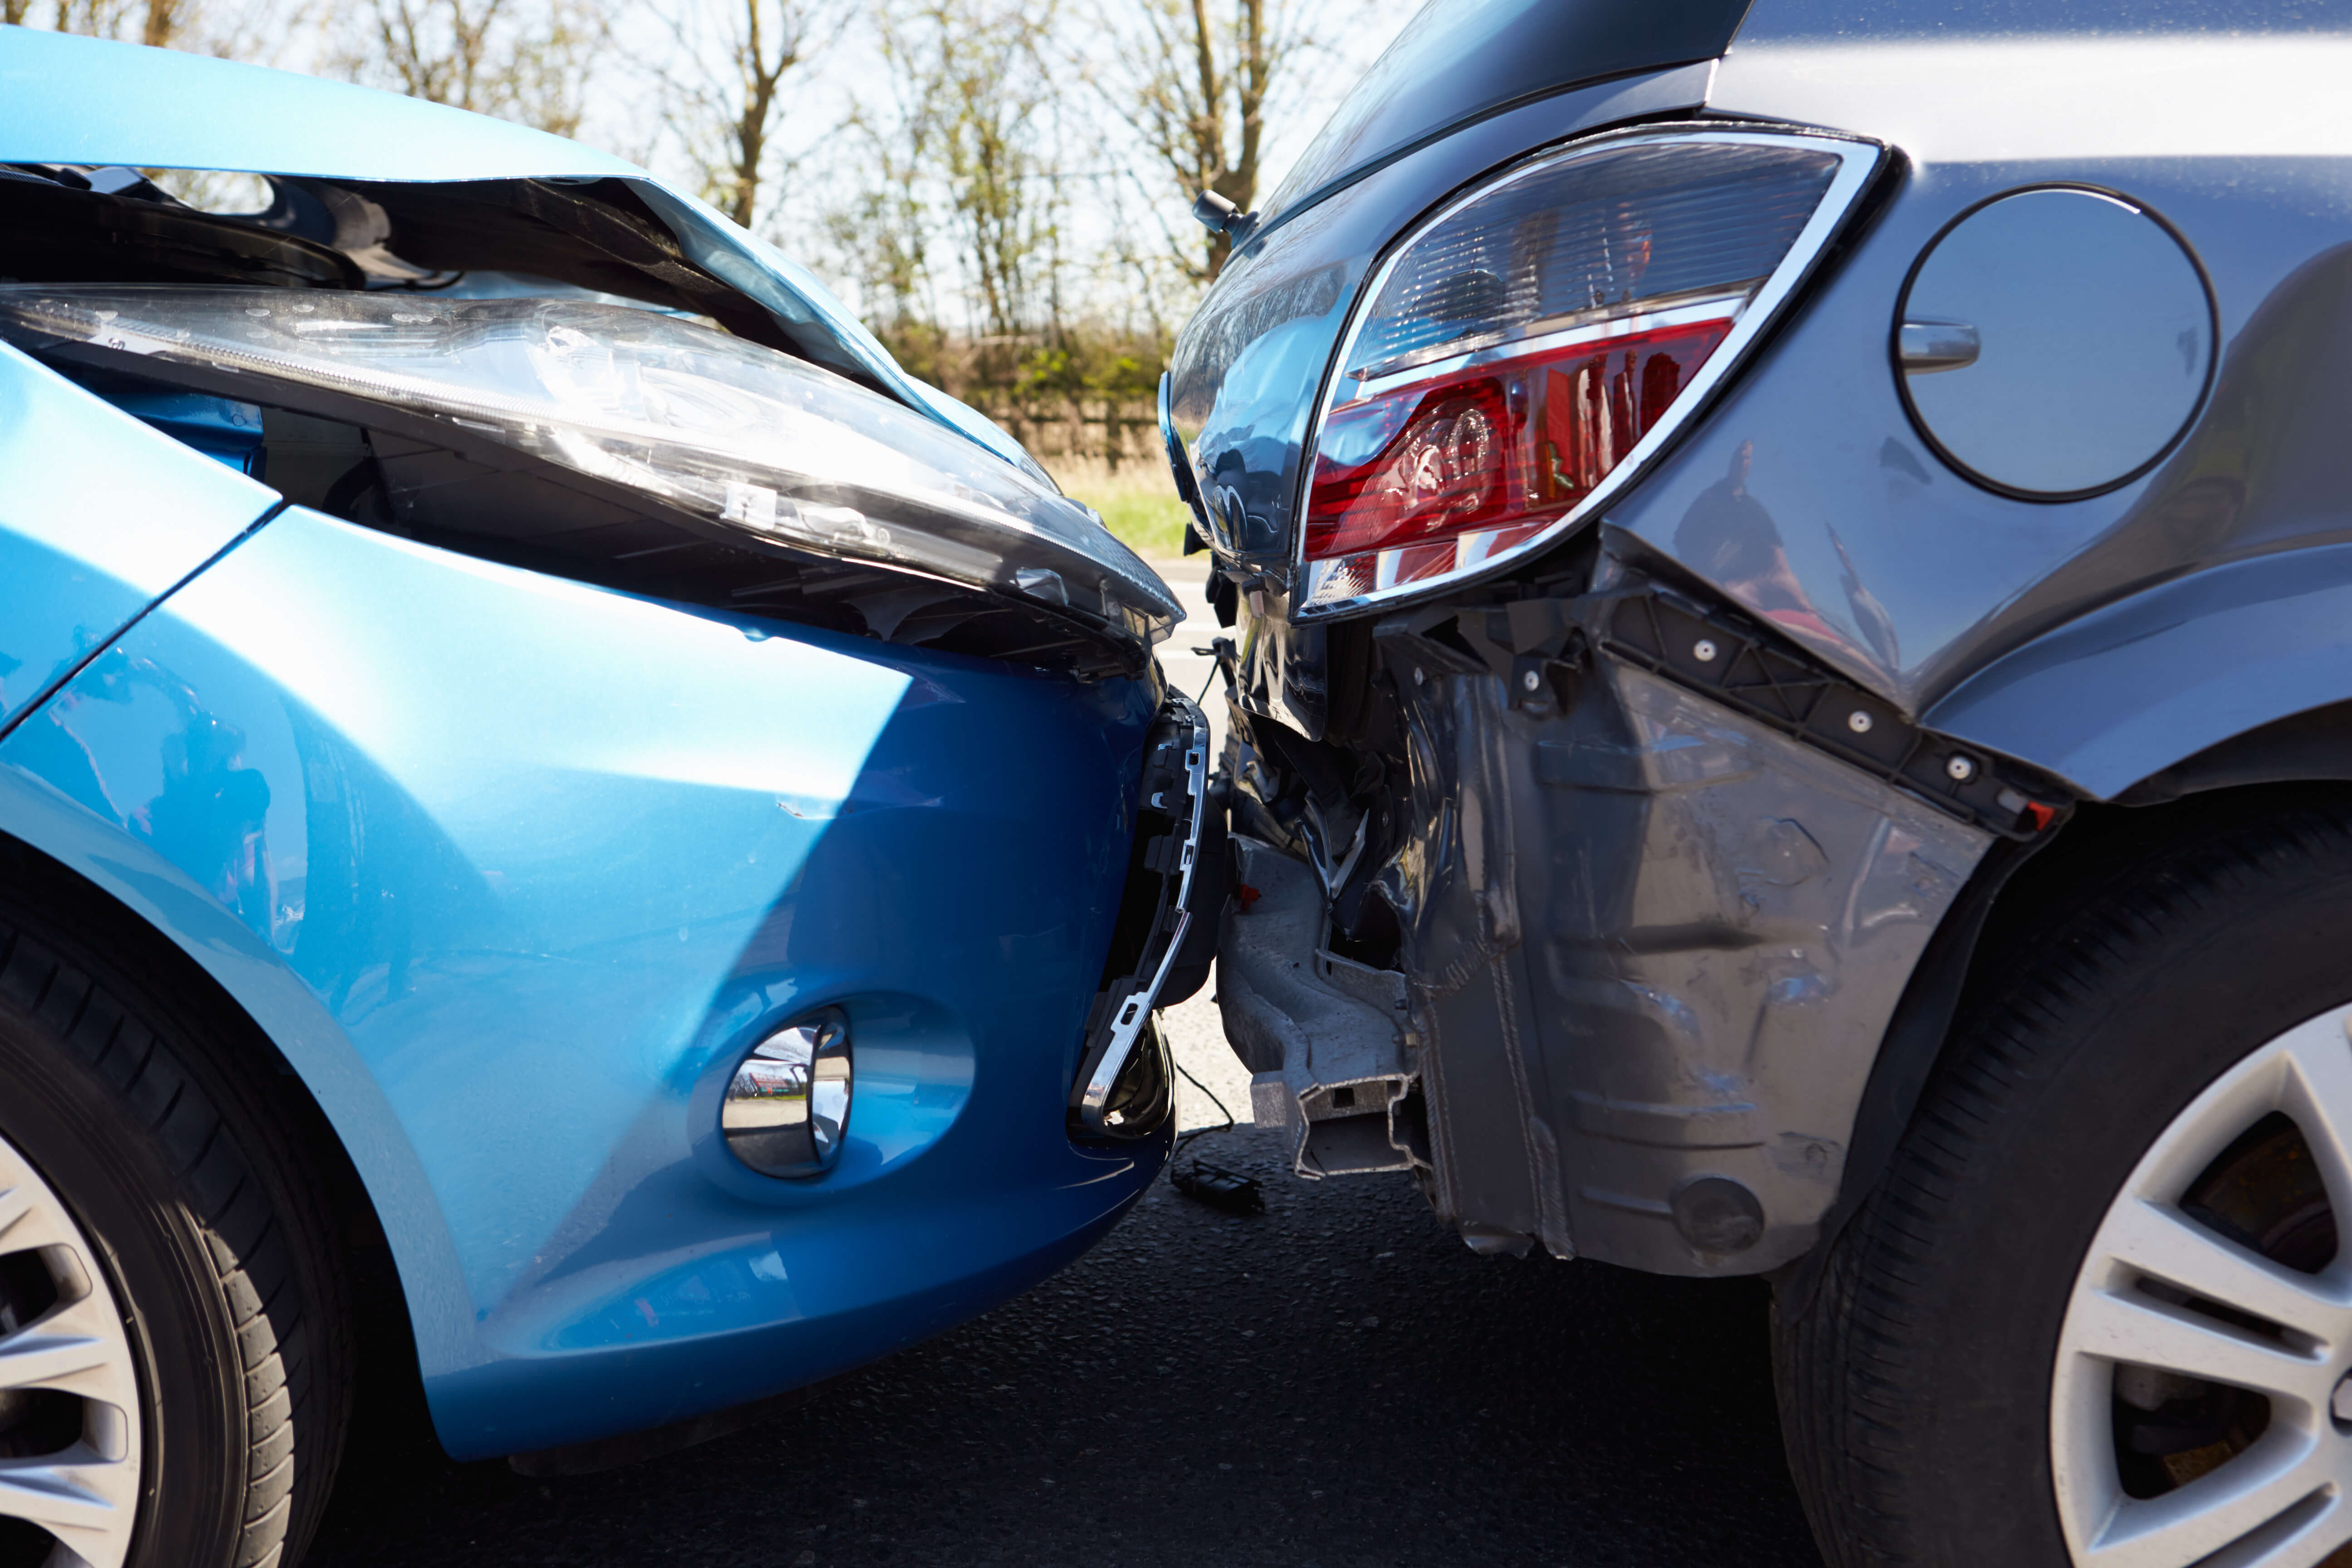 Close up of two cars involved in minor accident